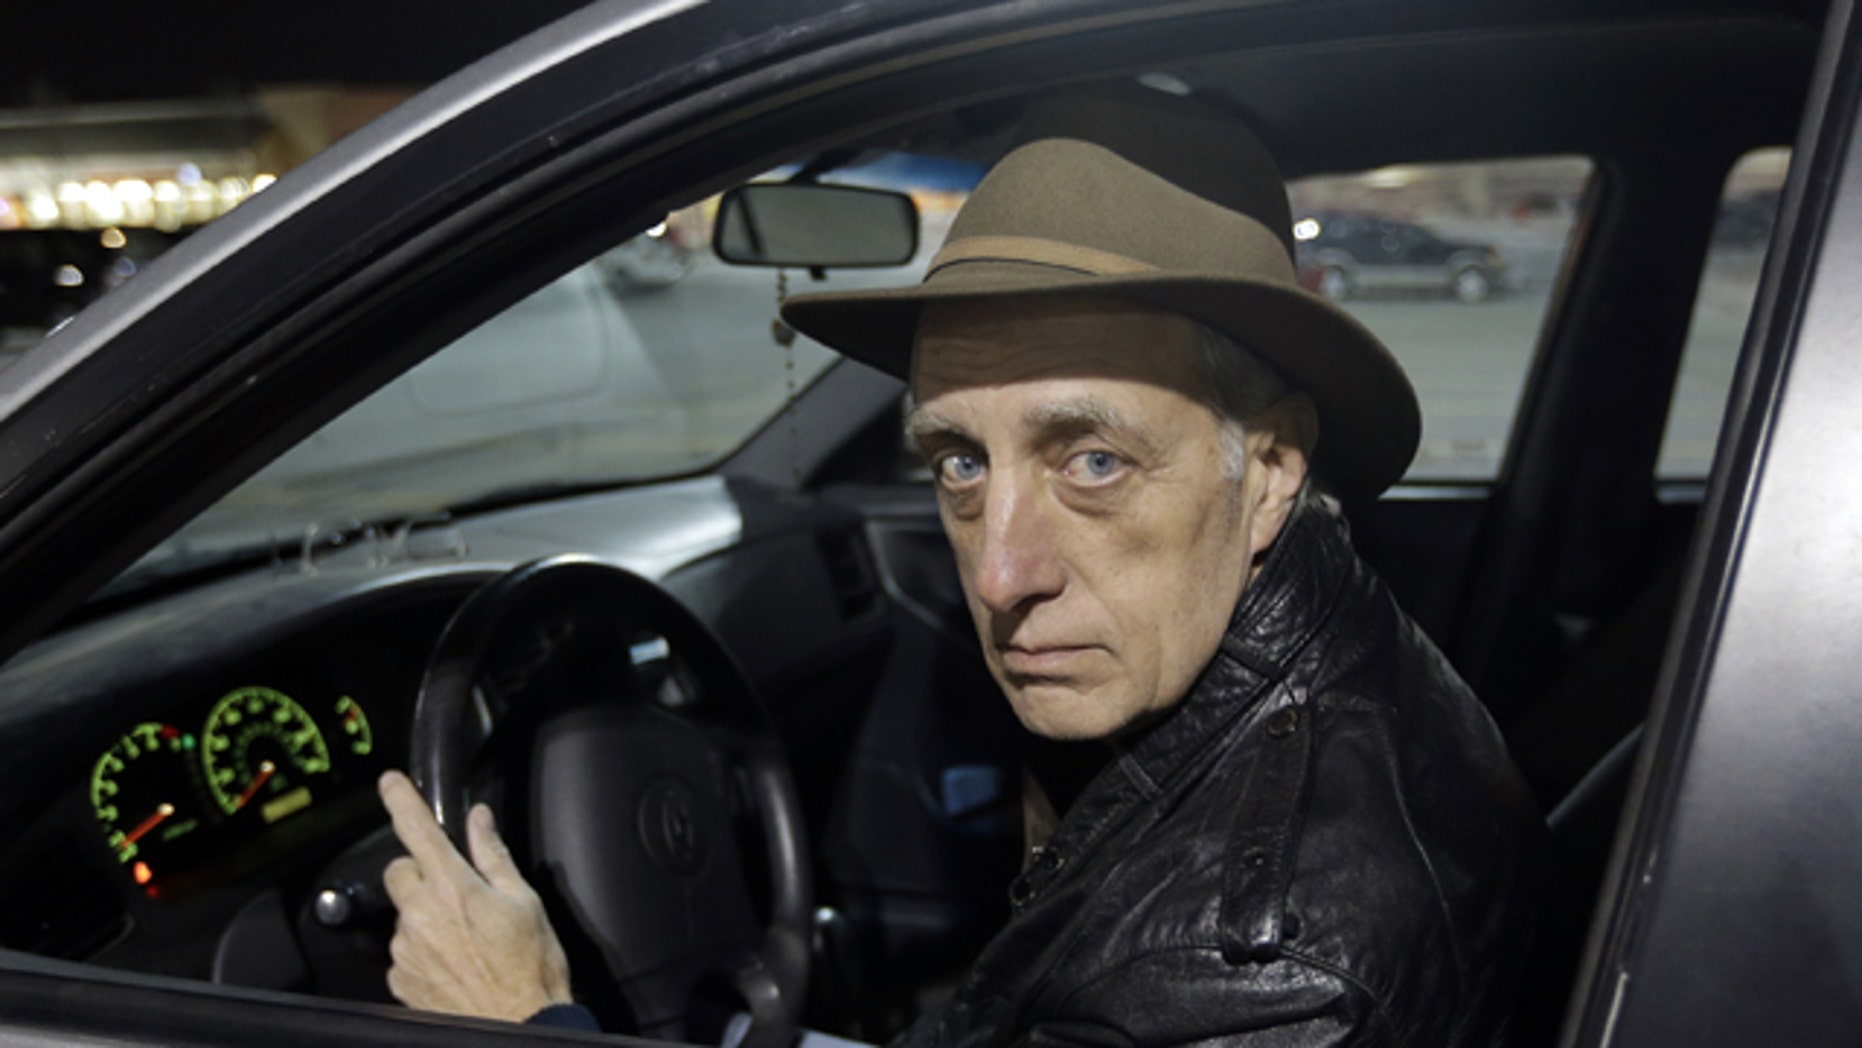 Feb. 21, 2013: Michael Choate, who says he nearly lost his job after DUI claim,  sits in his vehicle in West Jordan, Utah.